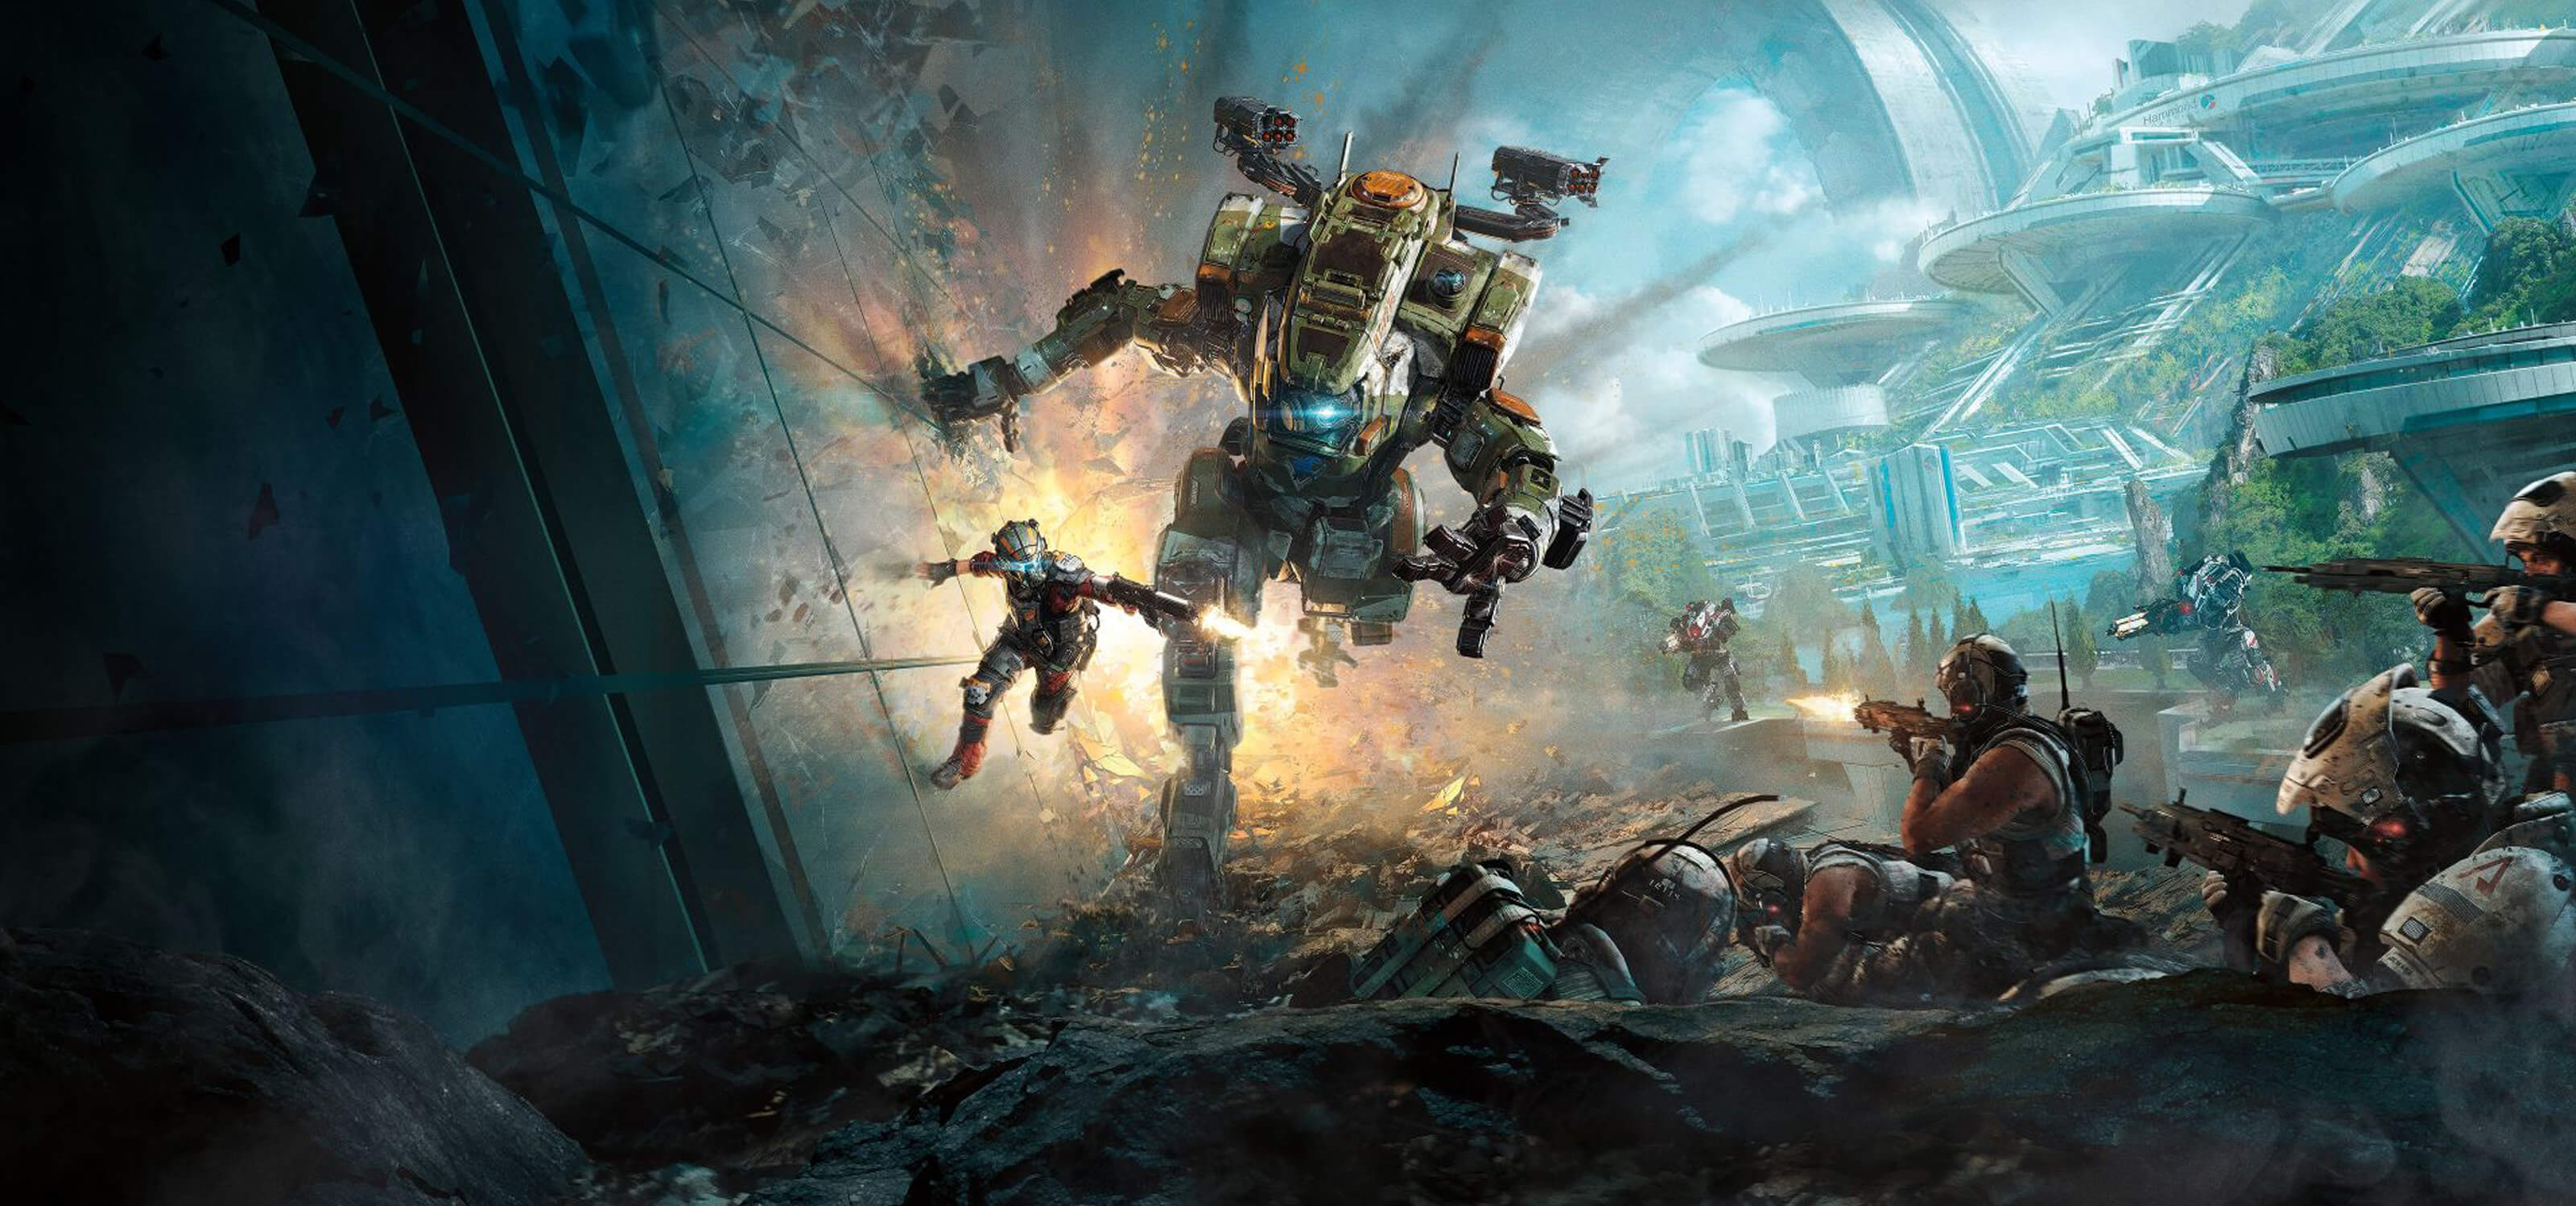 Screenshot from Titanfall 2 of a Titan, a huge robot-like exoskeleton containing a pilot, chasing a man in a futuristic city